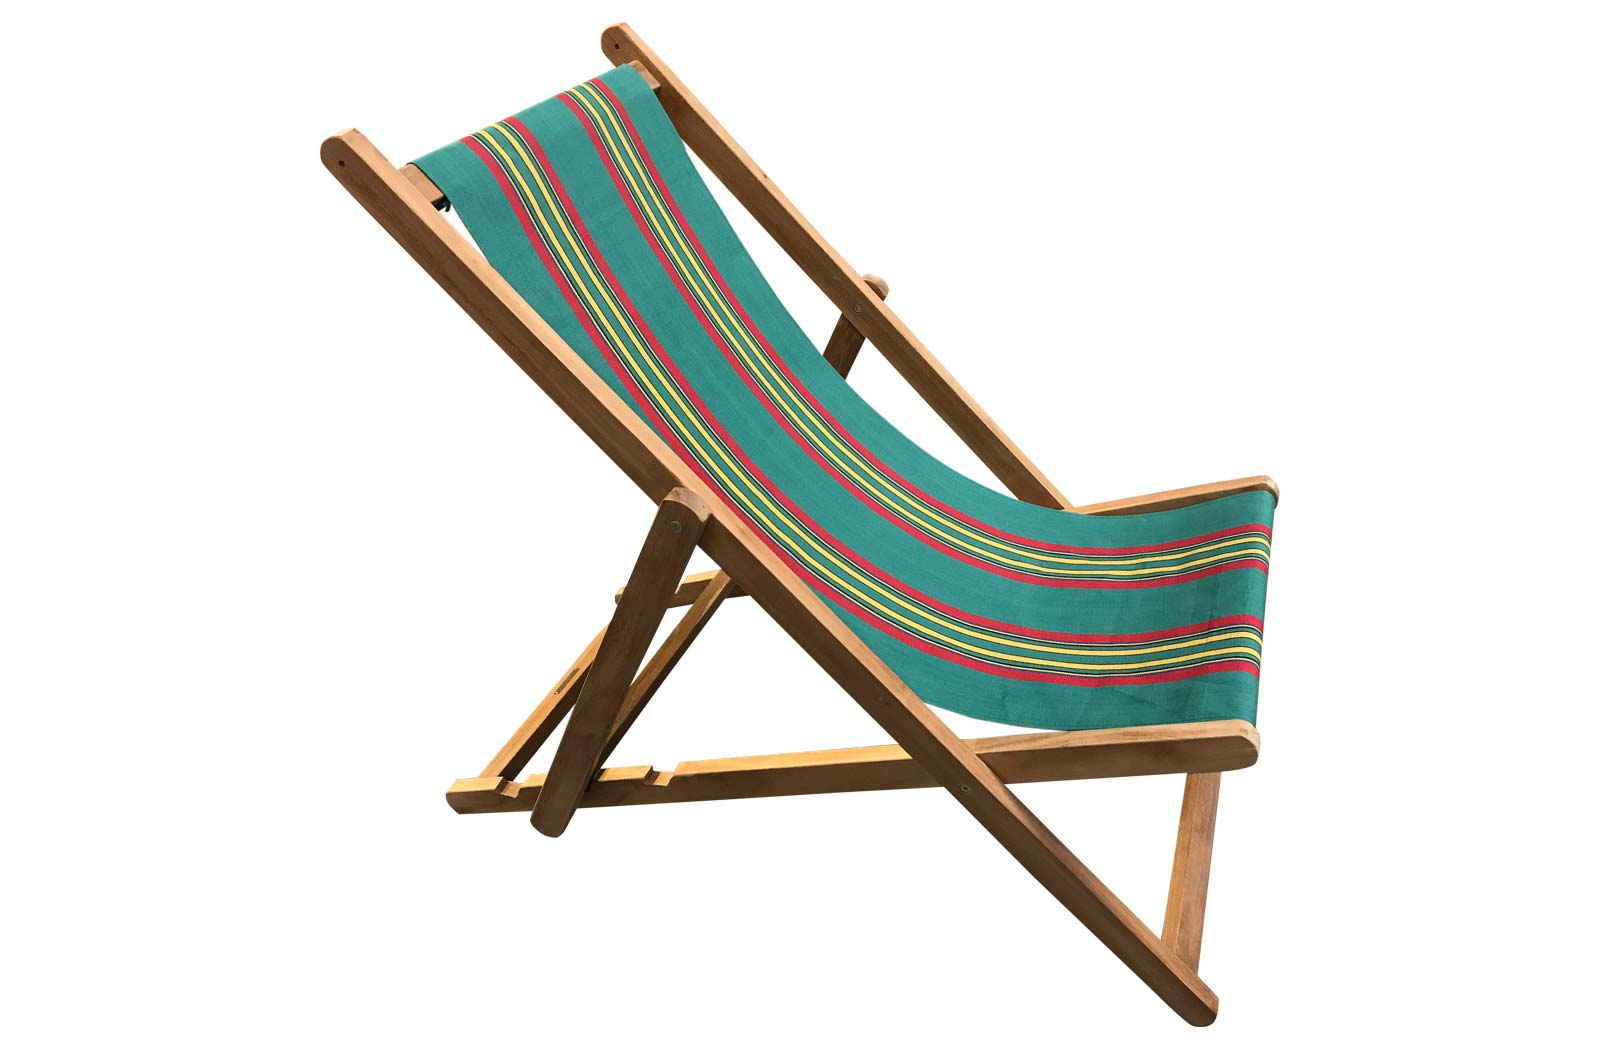 Retro Green Stripe Deckchair | Traditional Wooden Deck Chairs Jade green, red, yellow stripe